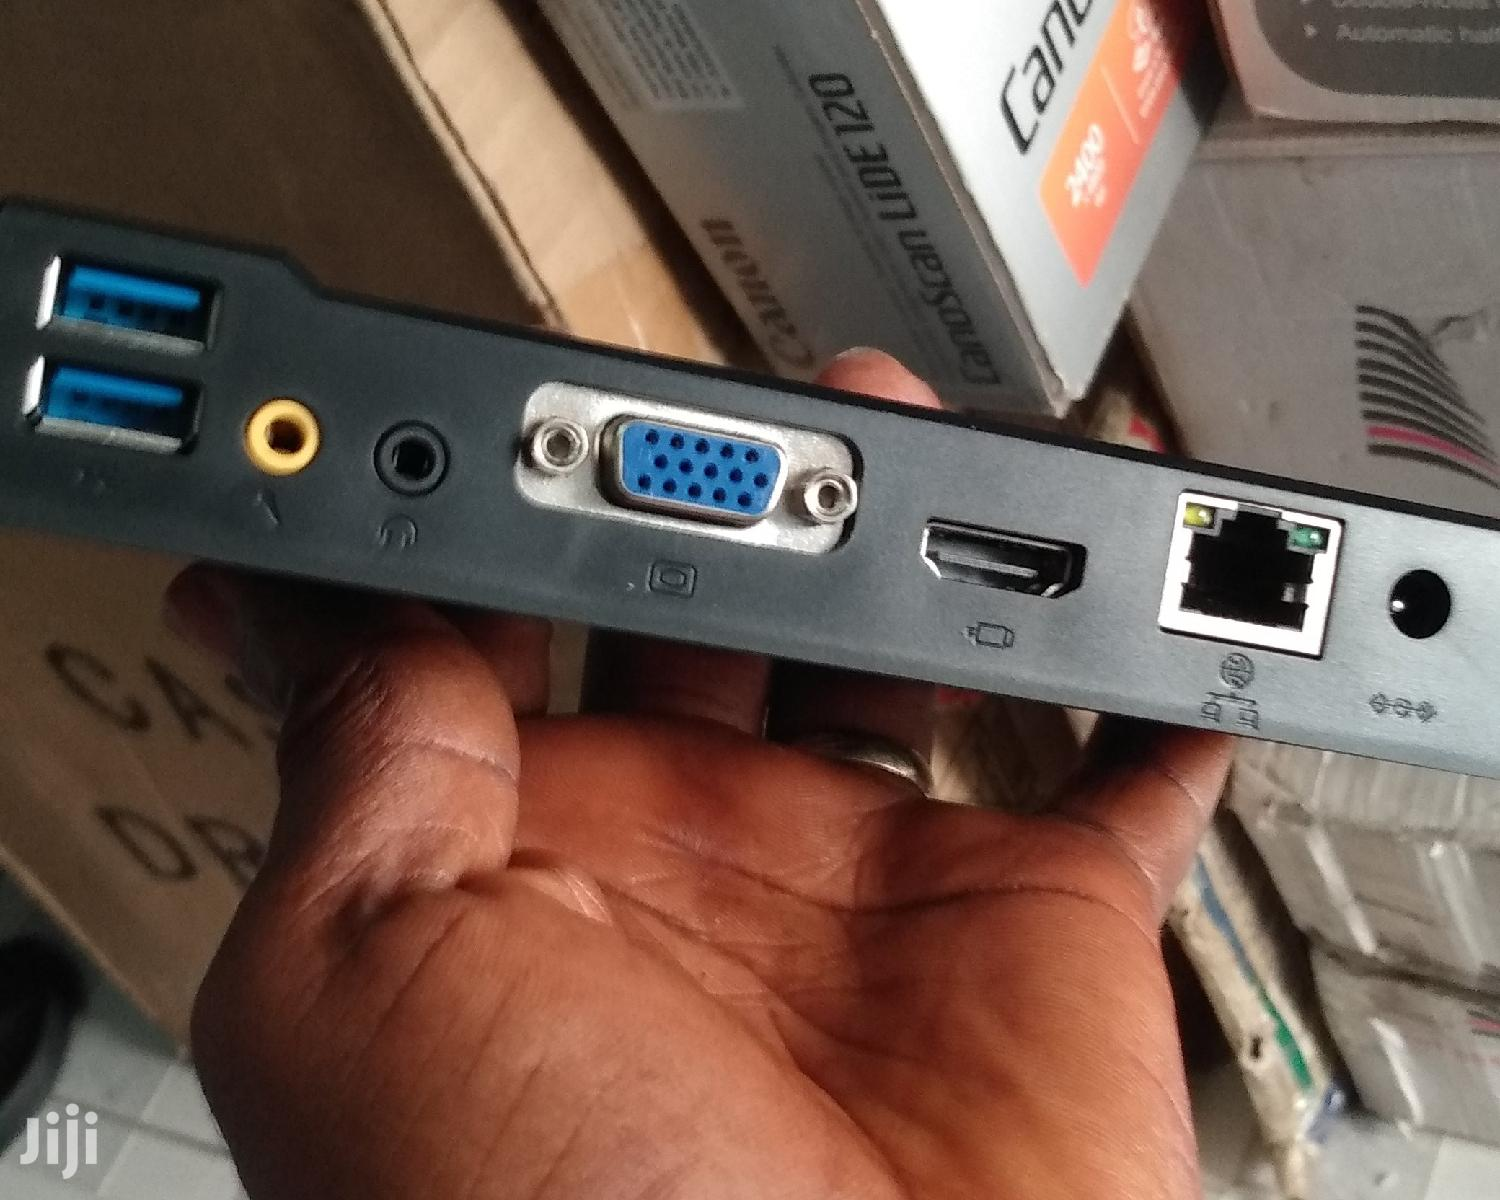 Thin Client | Laptops & Computers for sale in Accra Metropolitan, Greater Accra, Ghana